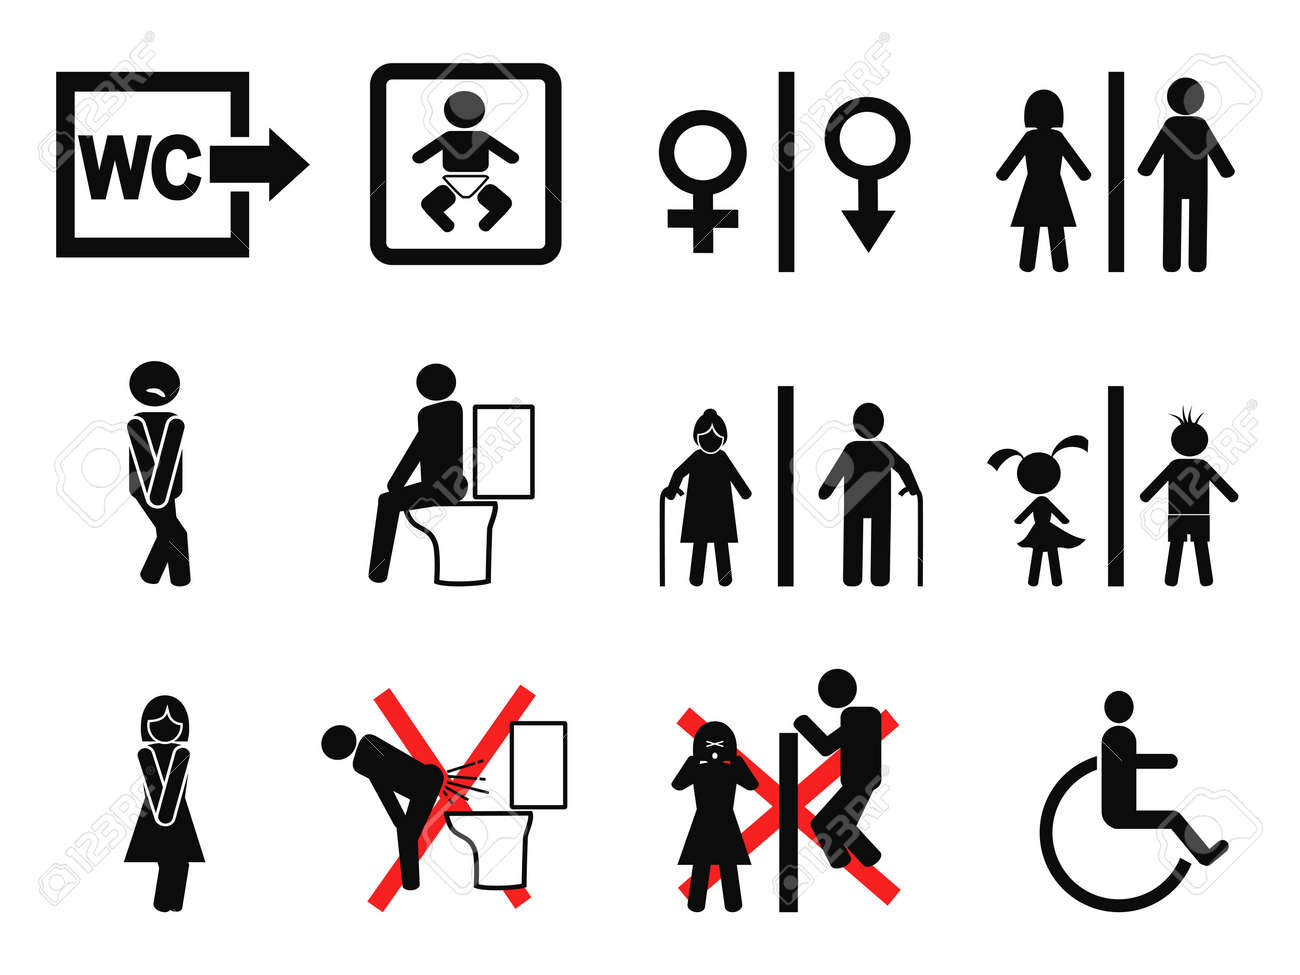 Isolated Black Bathroom Symbol On White Background Royalty Free Cliparts Vectors And Stock Illustration Image 38018639